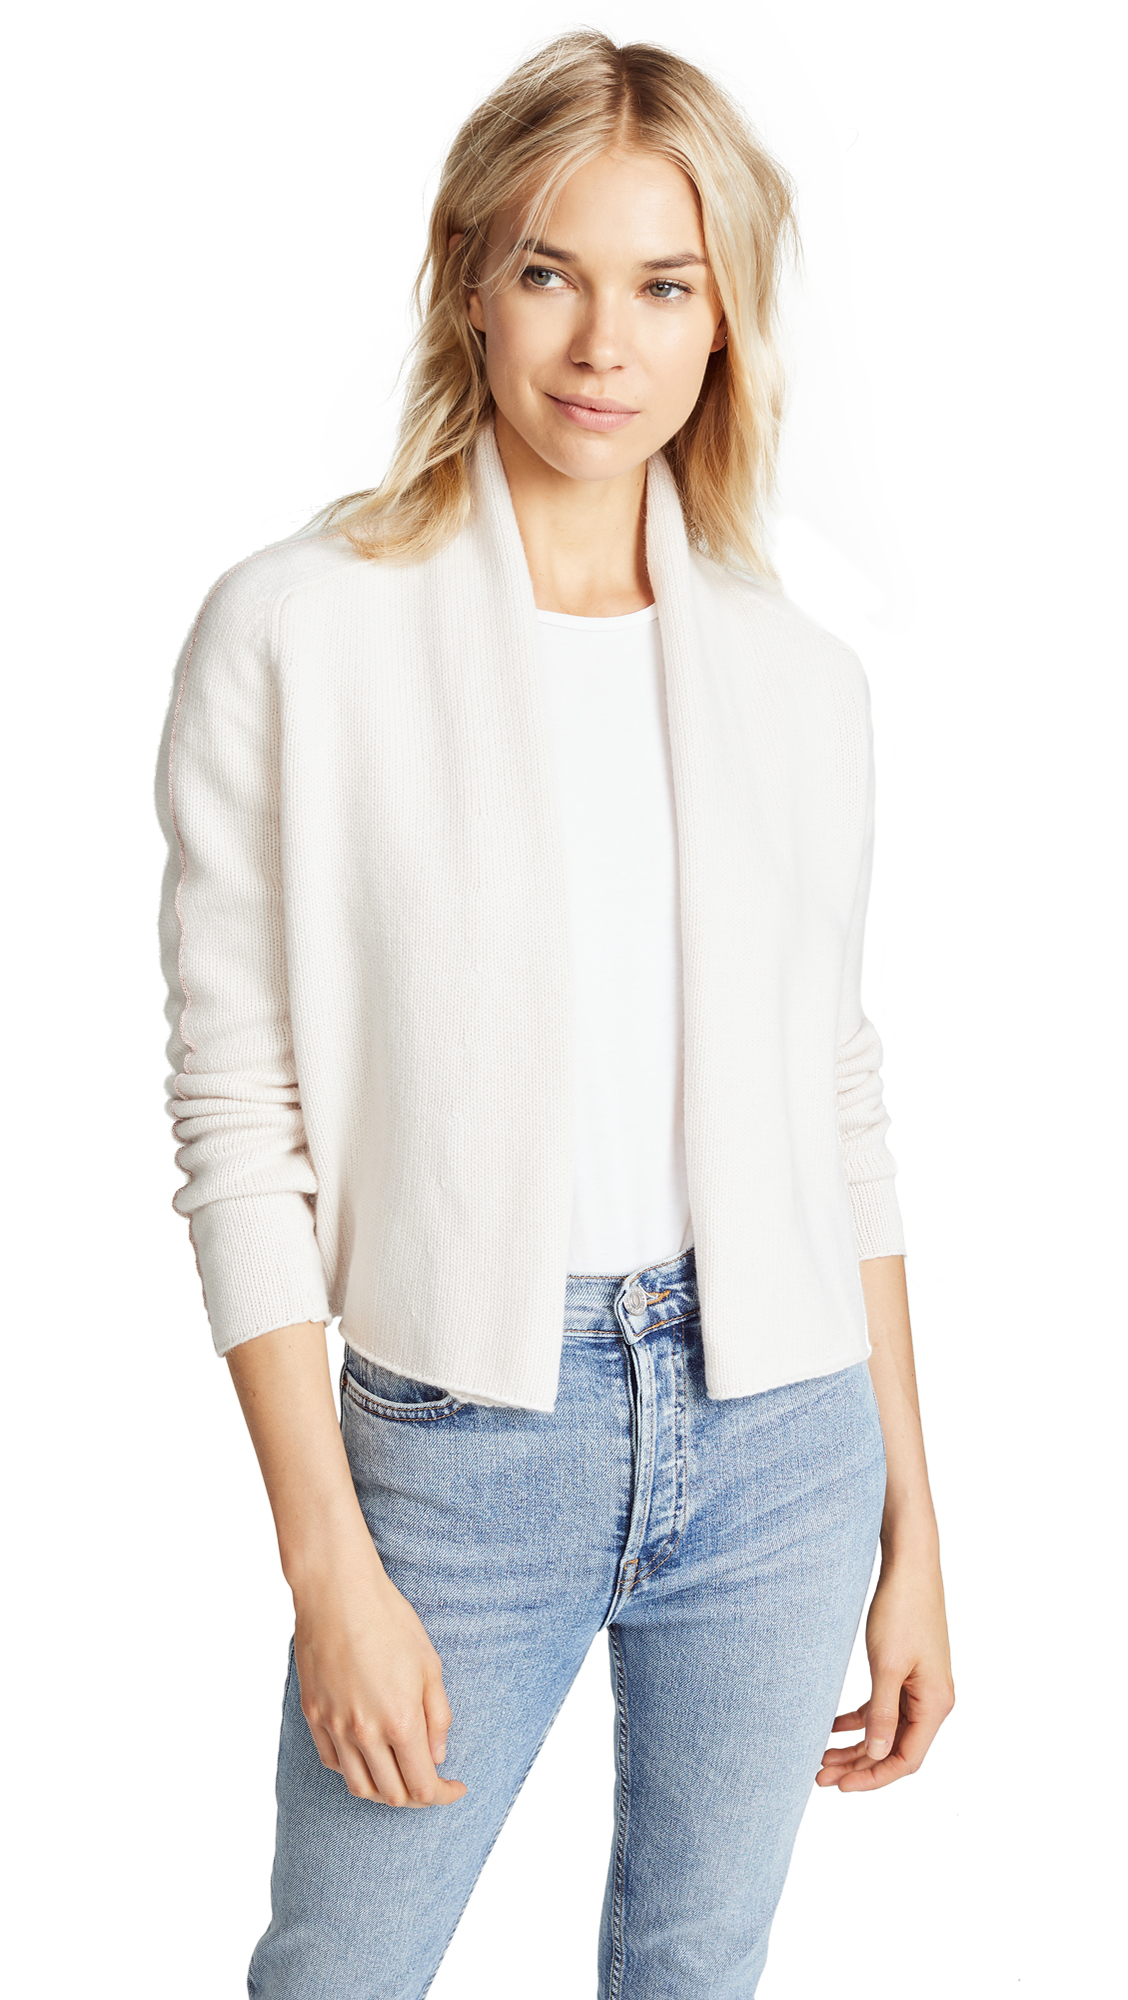 TSE CASHMERE CASHMERE CARDIGAN WITH CHAINETTE BEADS